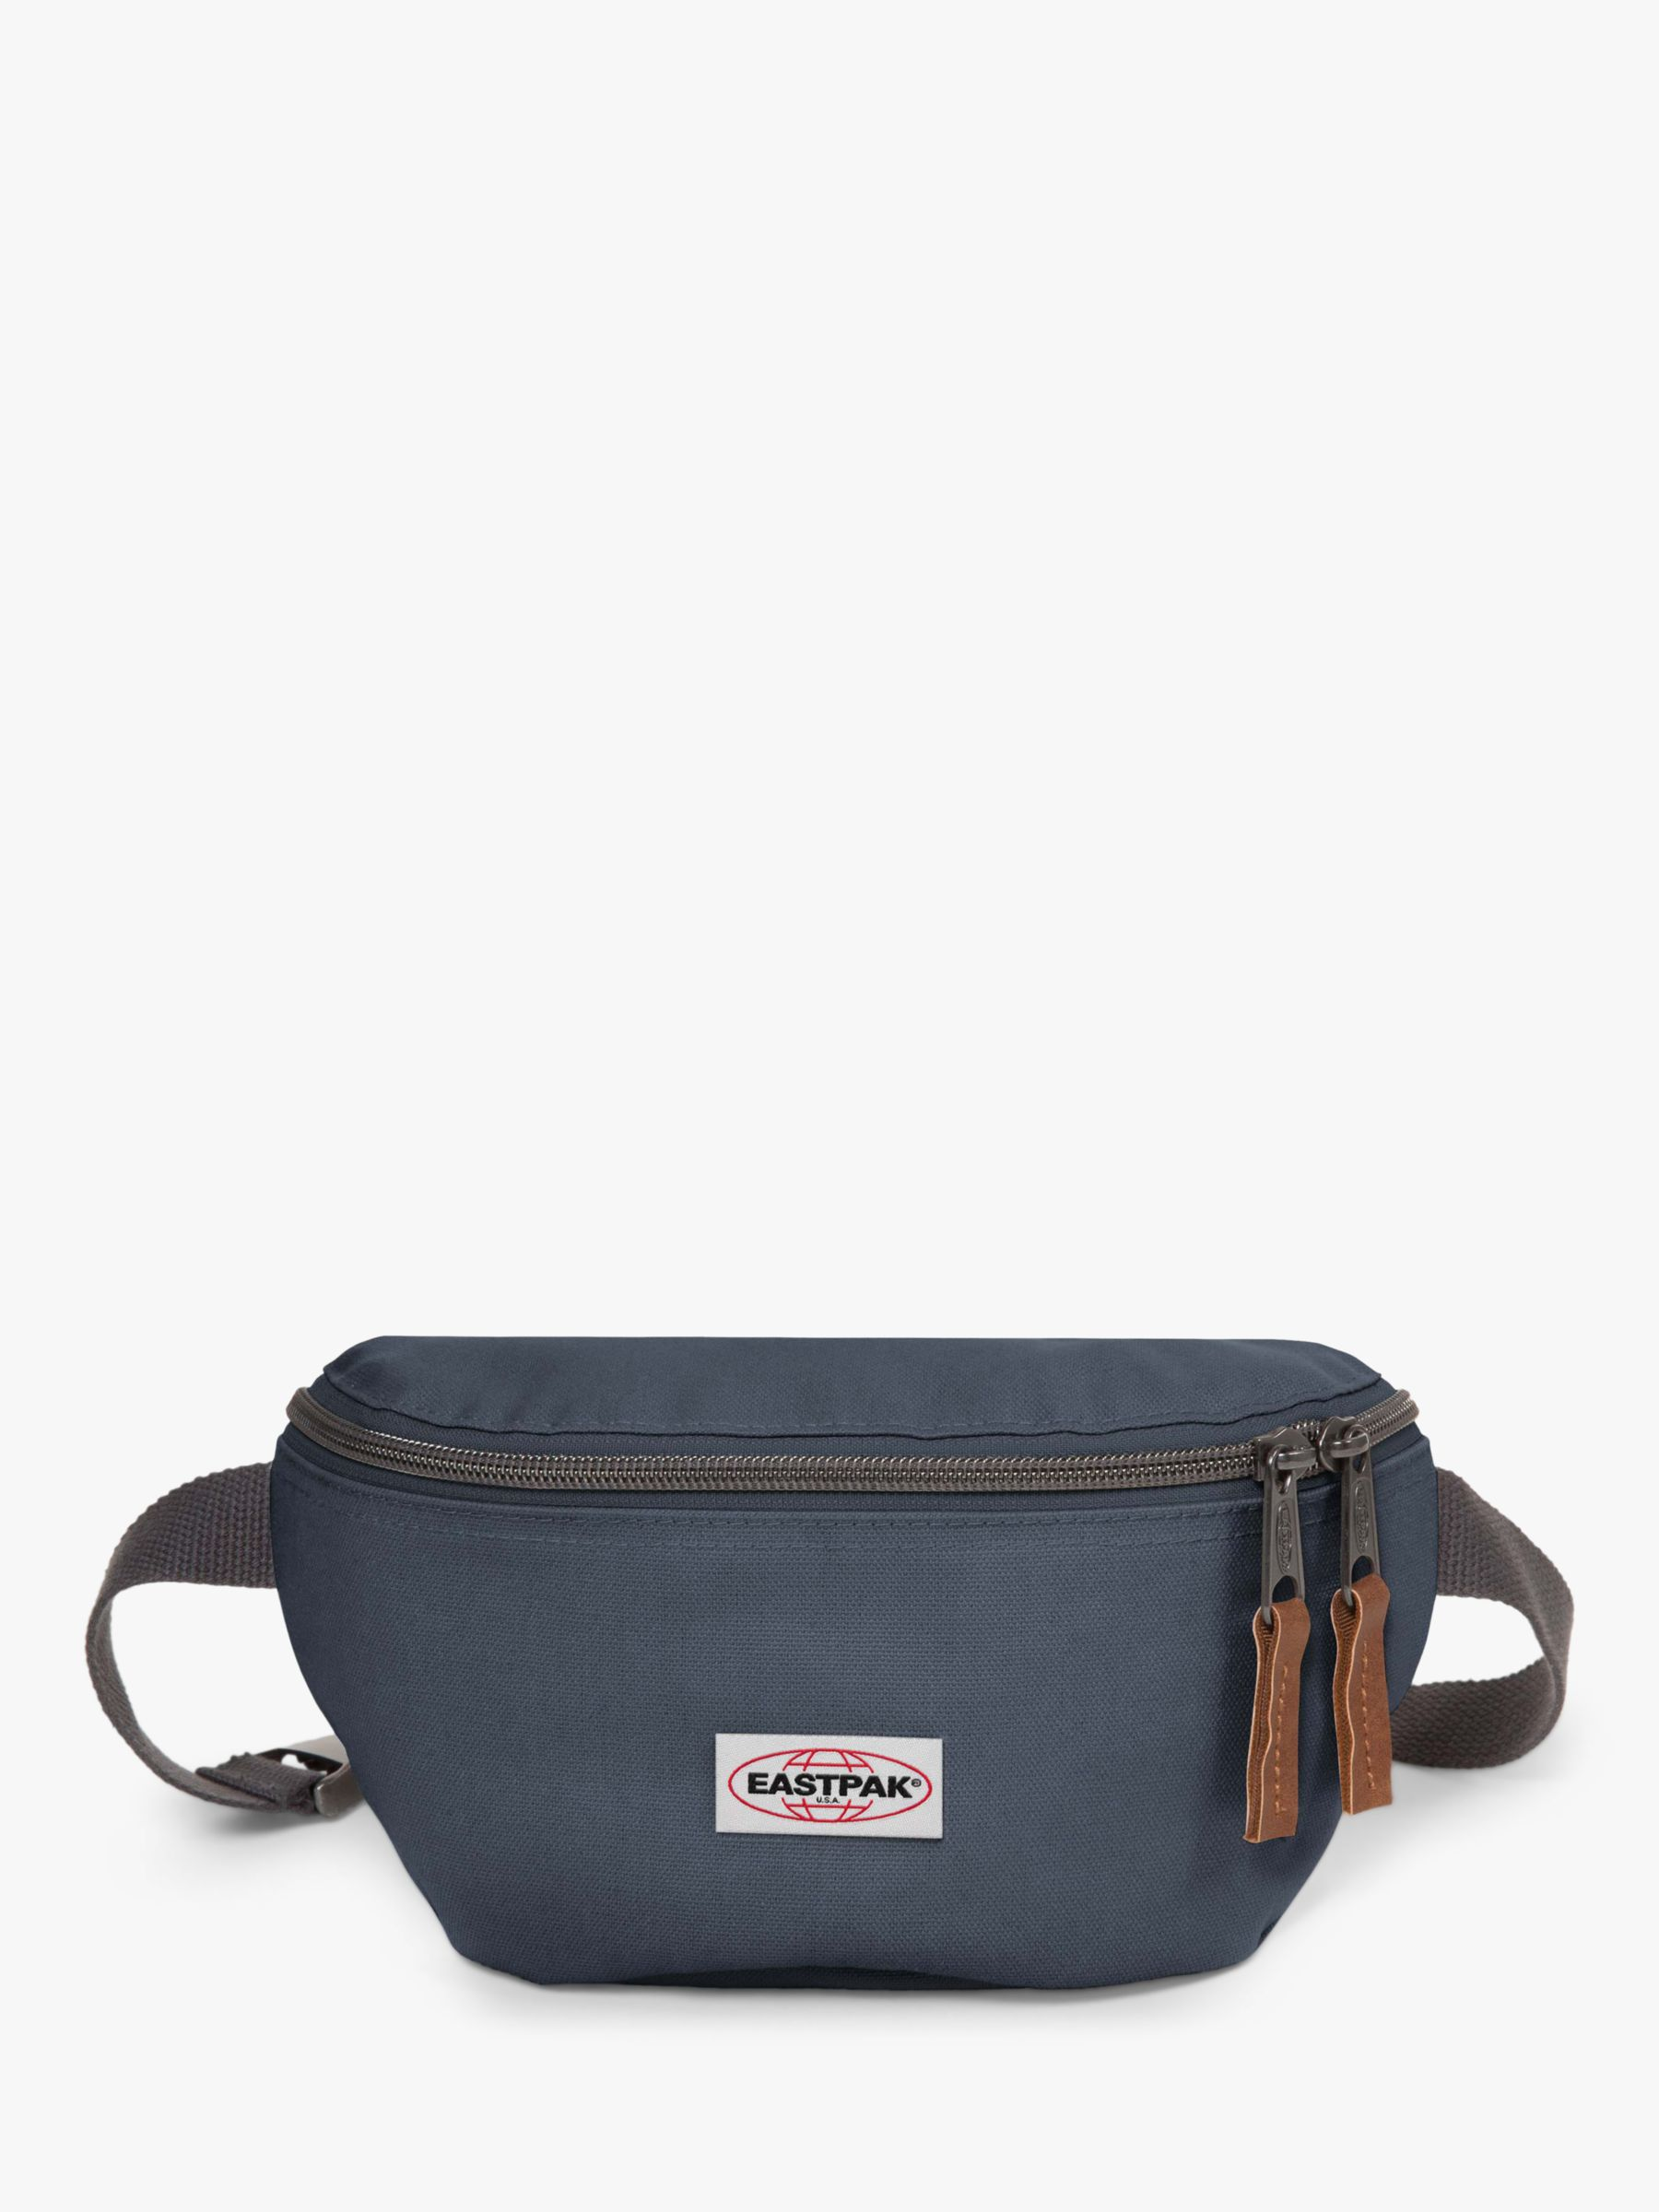 Eastpak Eastpak Springer Bum Bag, Opgrade Downtown